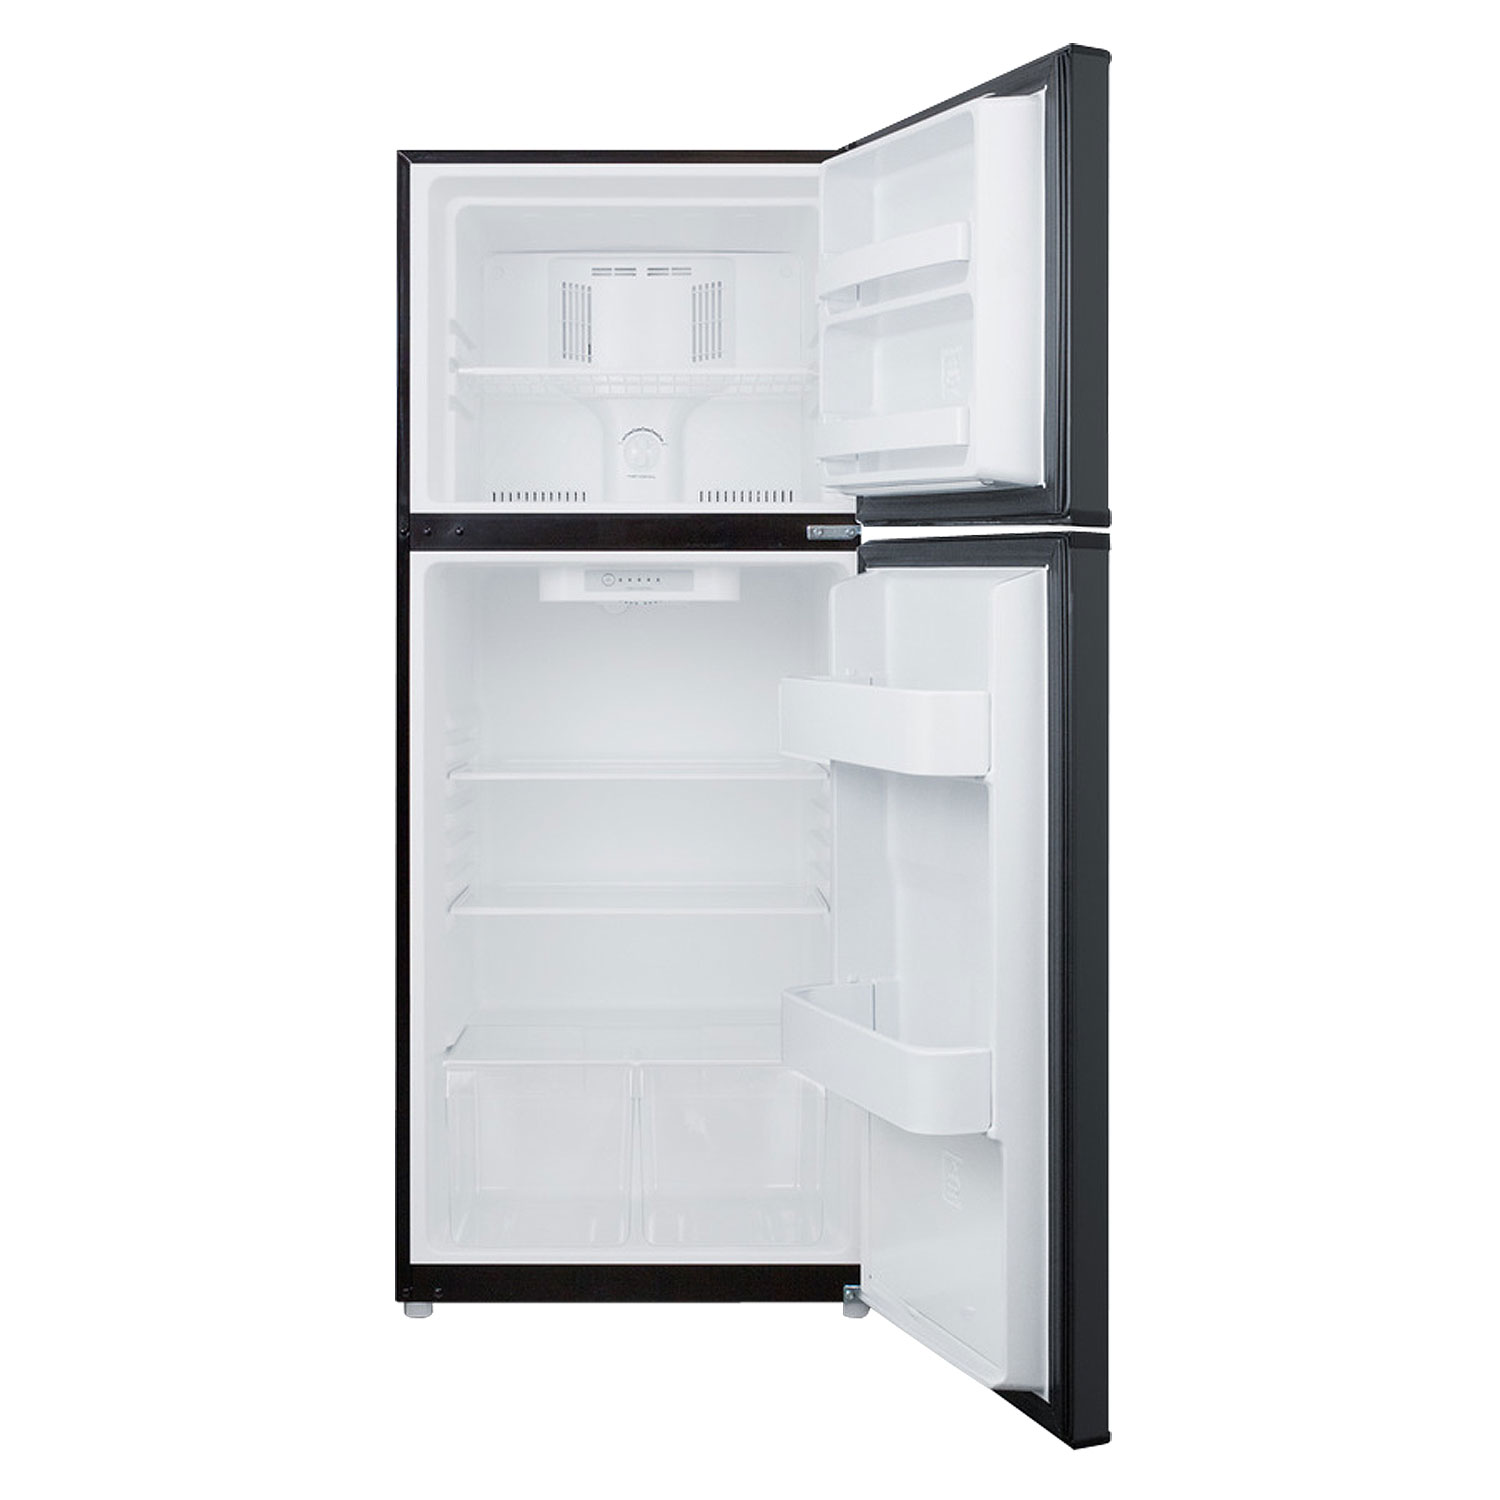 will your that product restaurant drawer equipment category undercounter refrigerator business commercial refrigerators fit needs freezer refrigeration